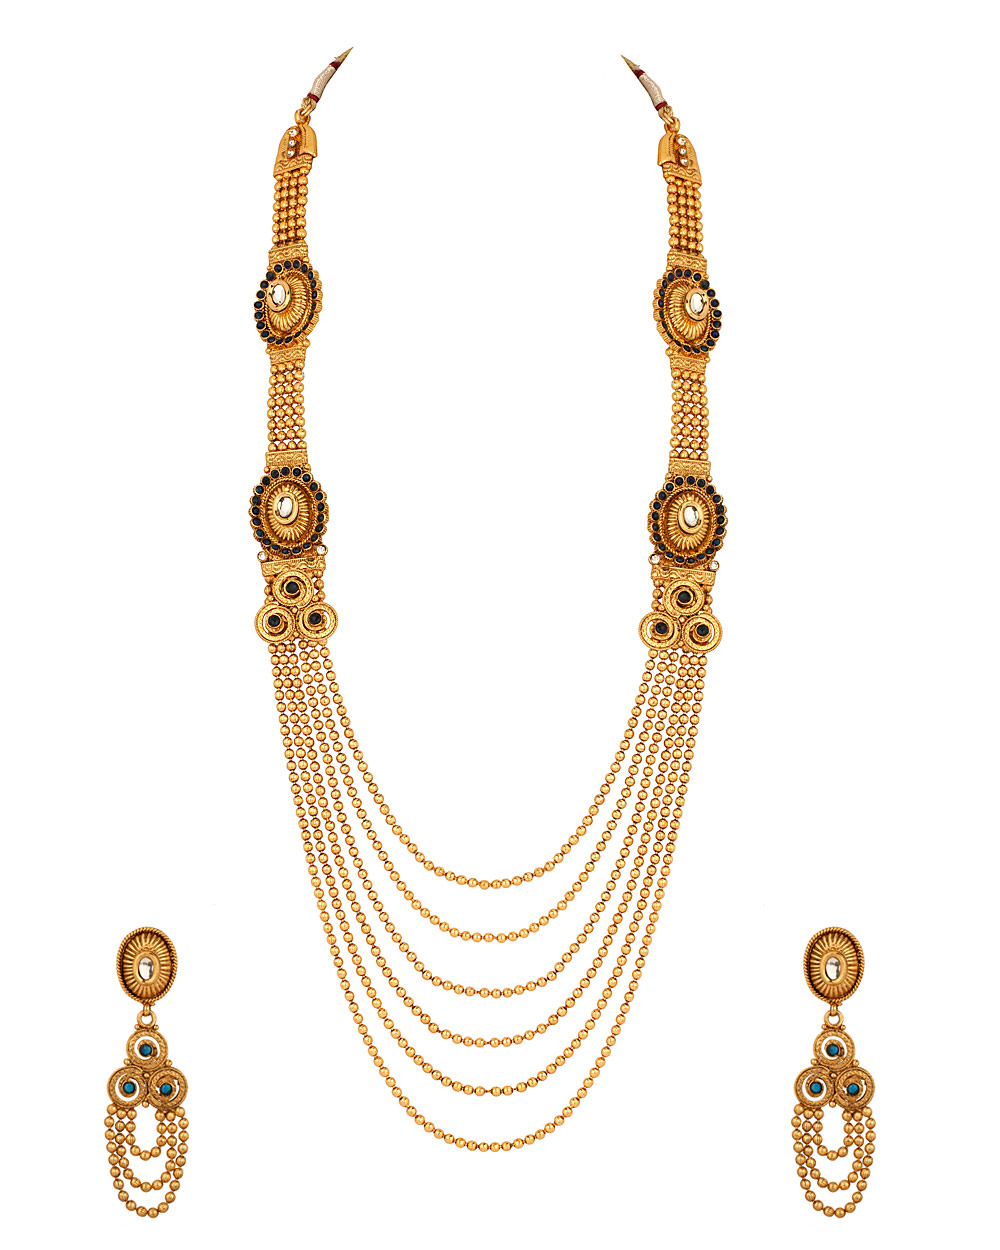 Buy Long Necklace Set with Golden Bead Strands; Blue Stone Studded ...